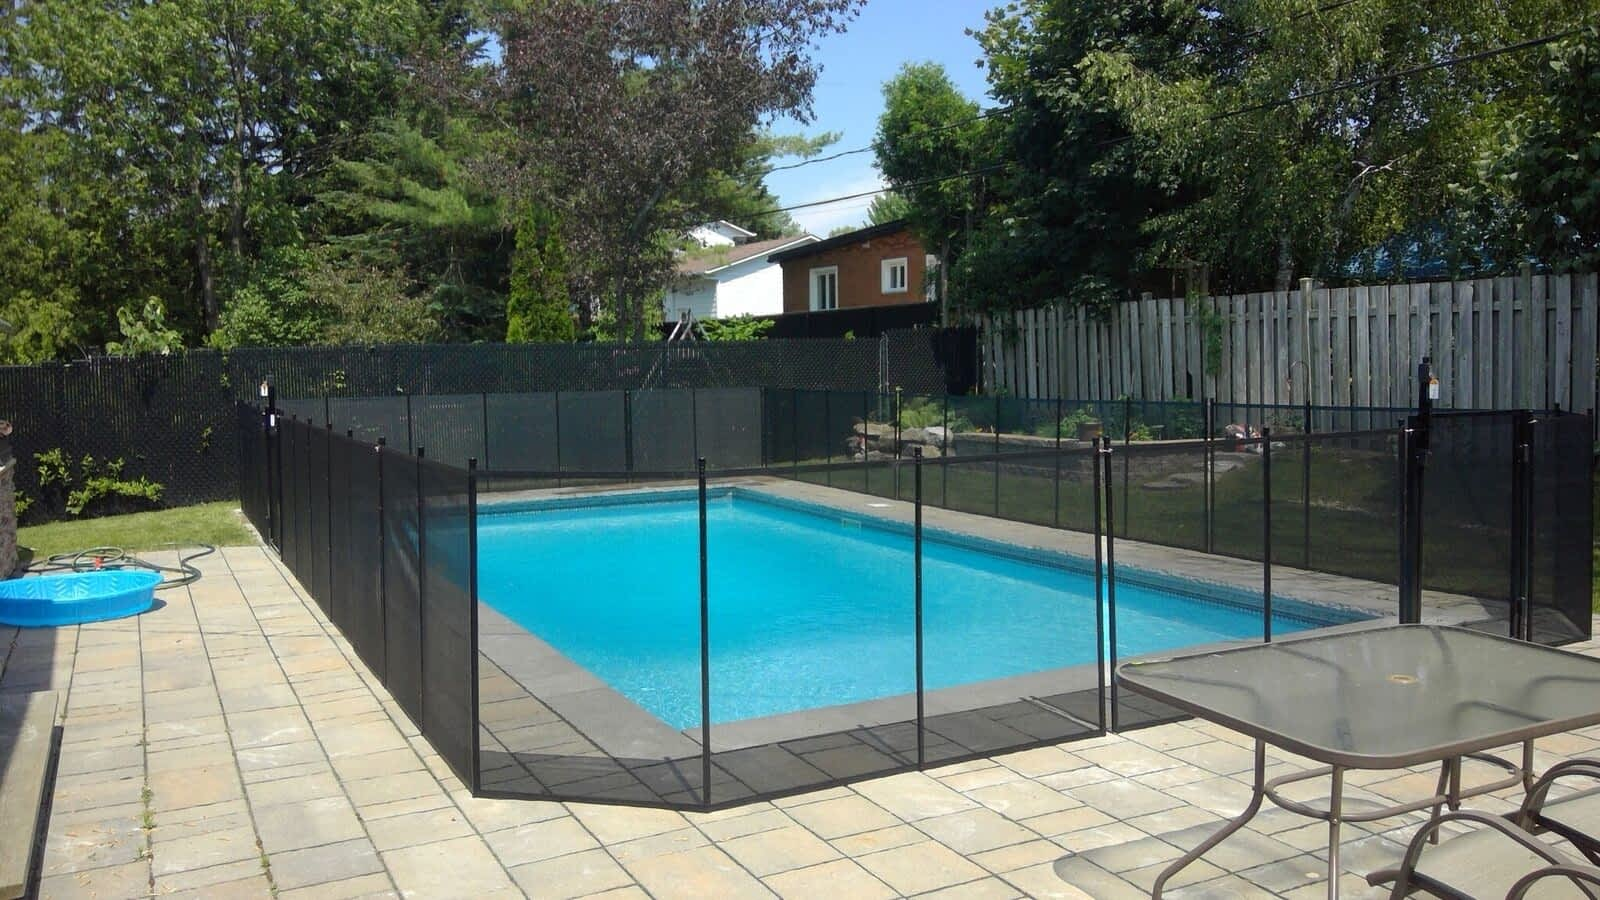 Protection Piscine Amovible Affordable Image With Protection